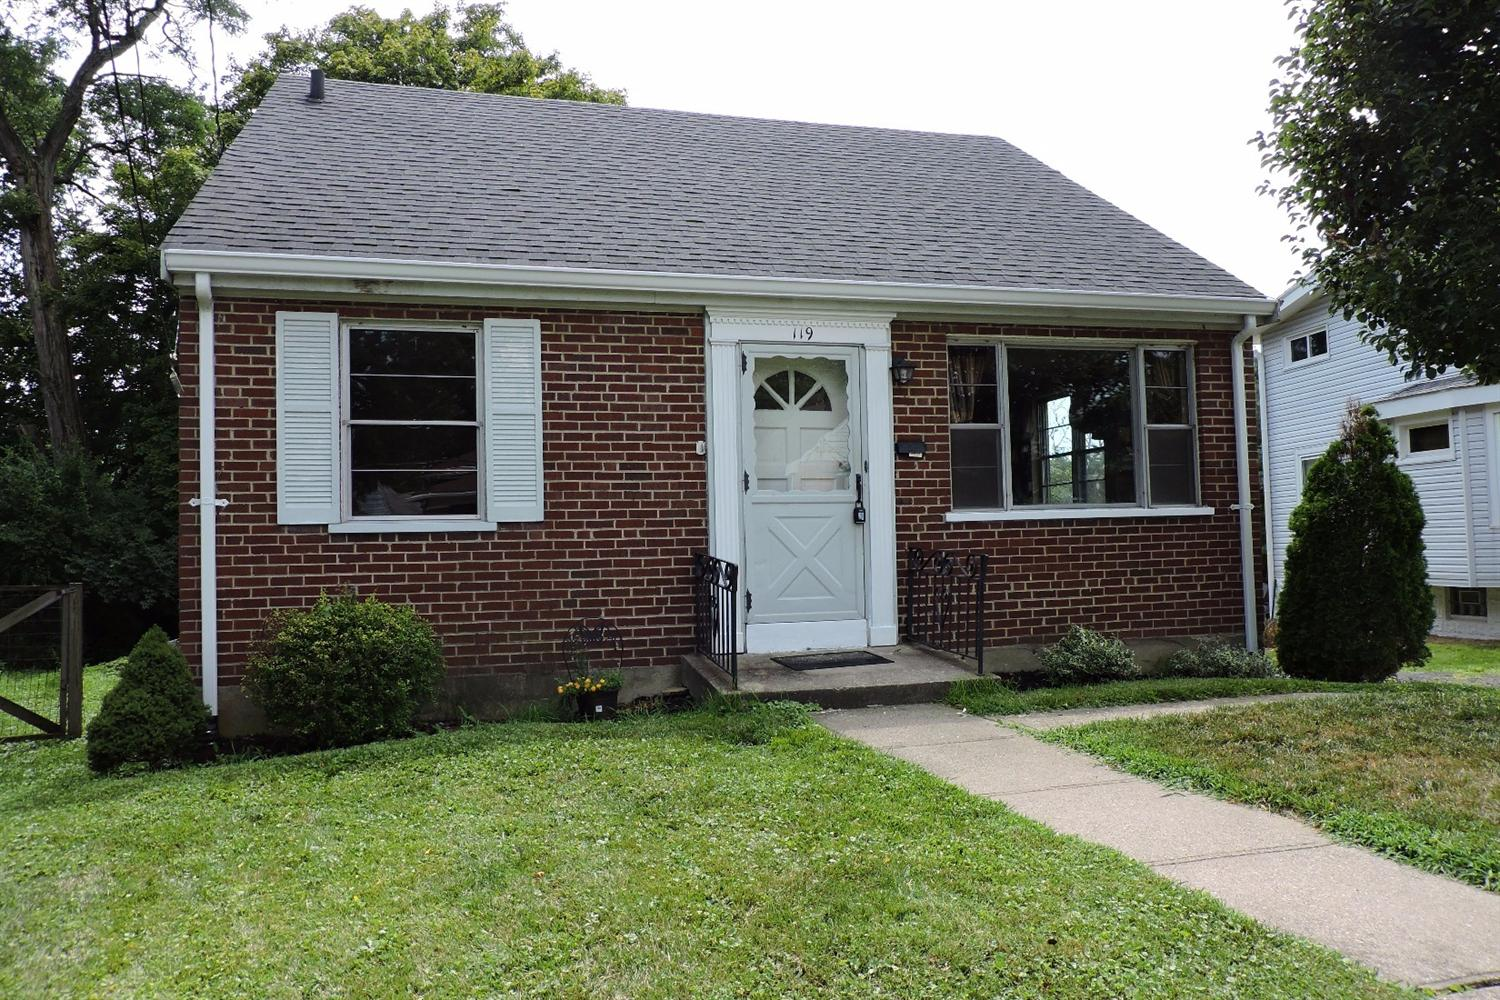 real estate photo 1 for 119 Harvard Pl Southgate, KY 41071